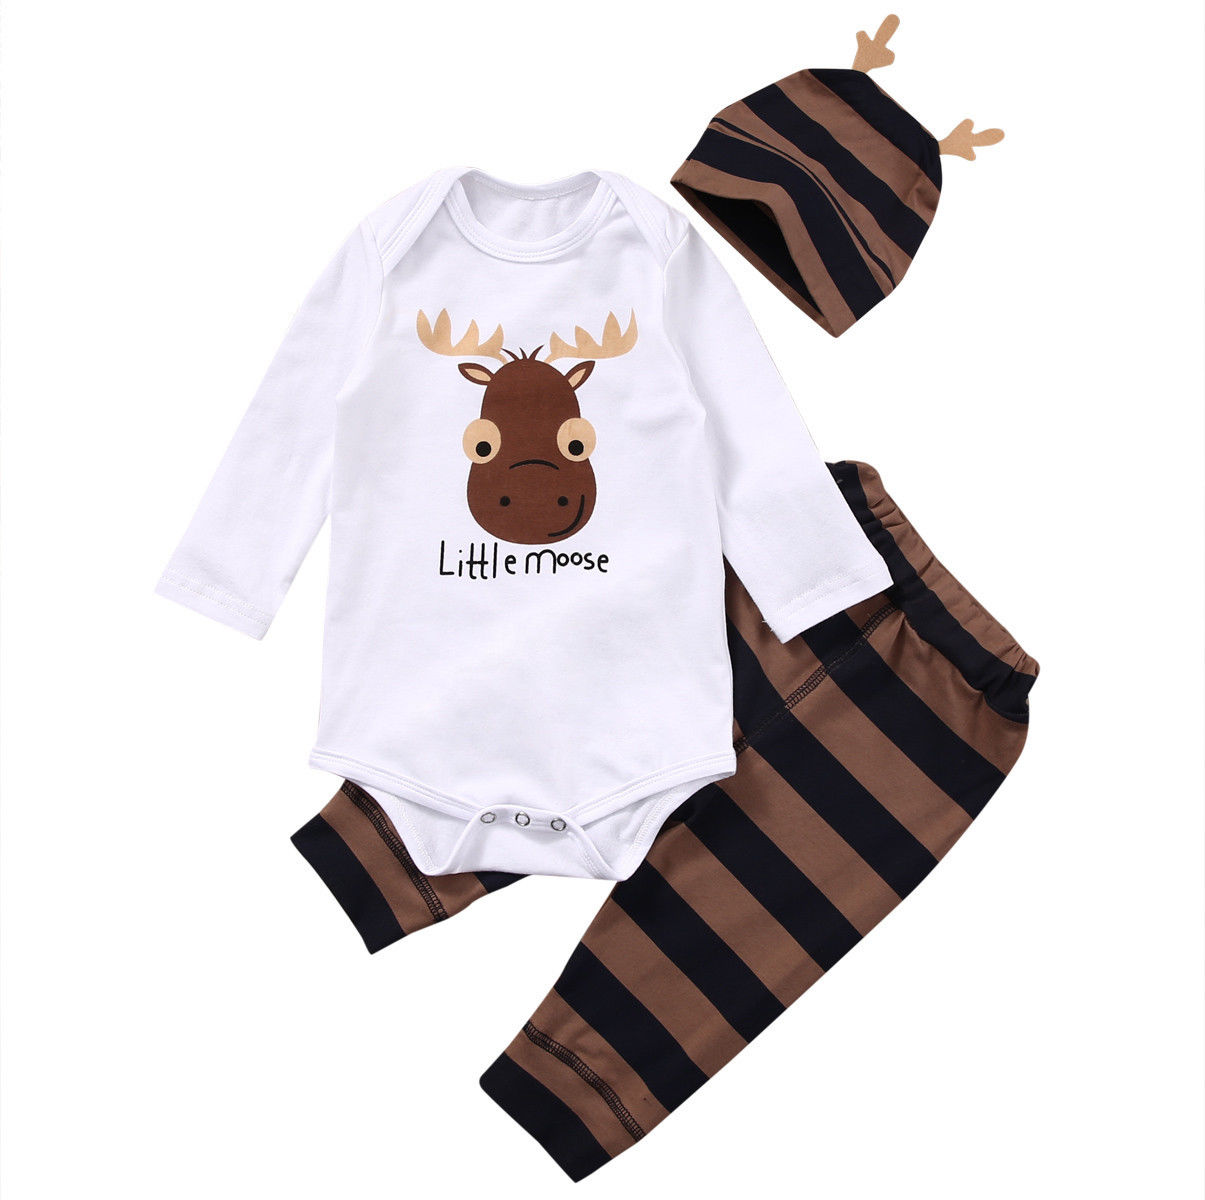 2 Year Baby Girl Winter Clothes